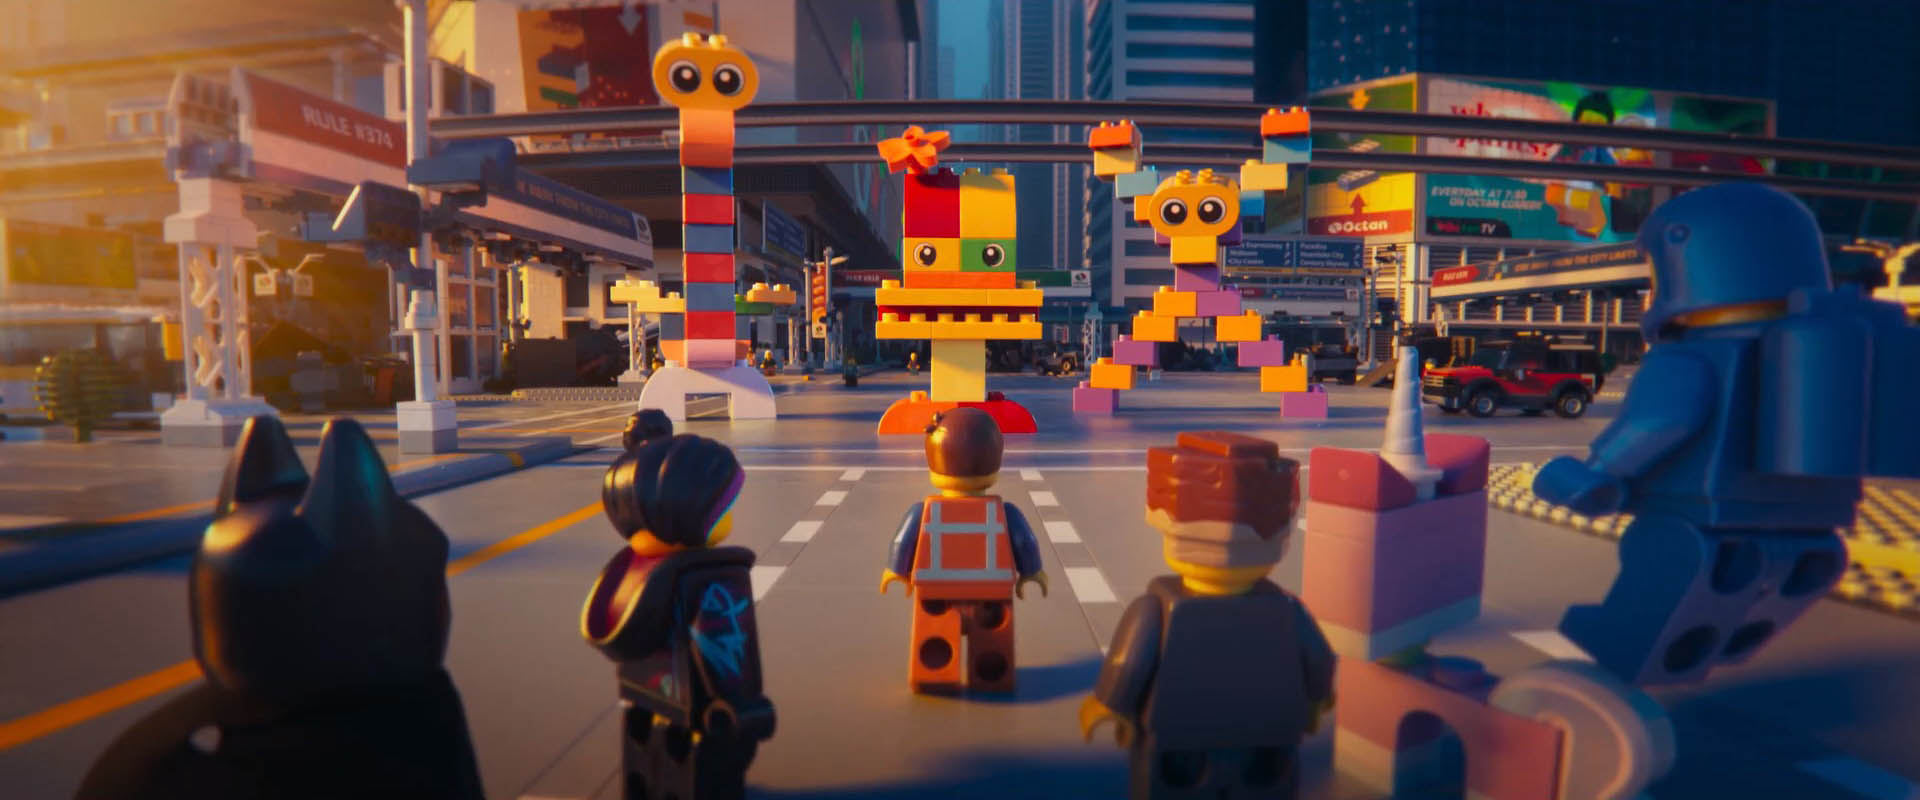 The Lego Movie 3 unlikely to happen